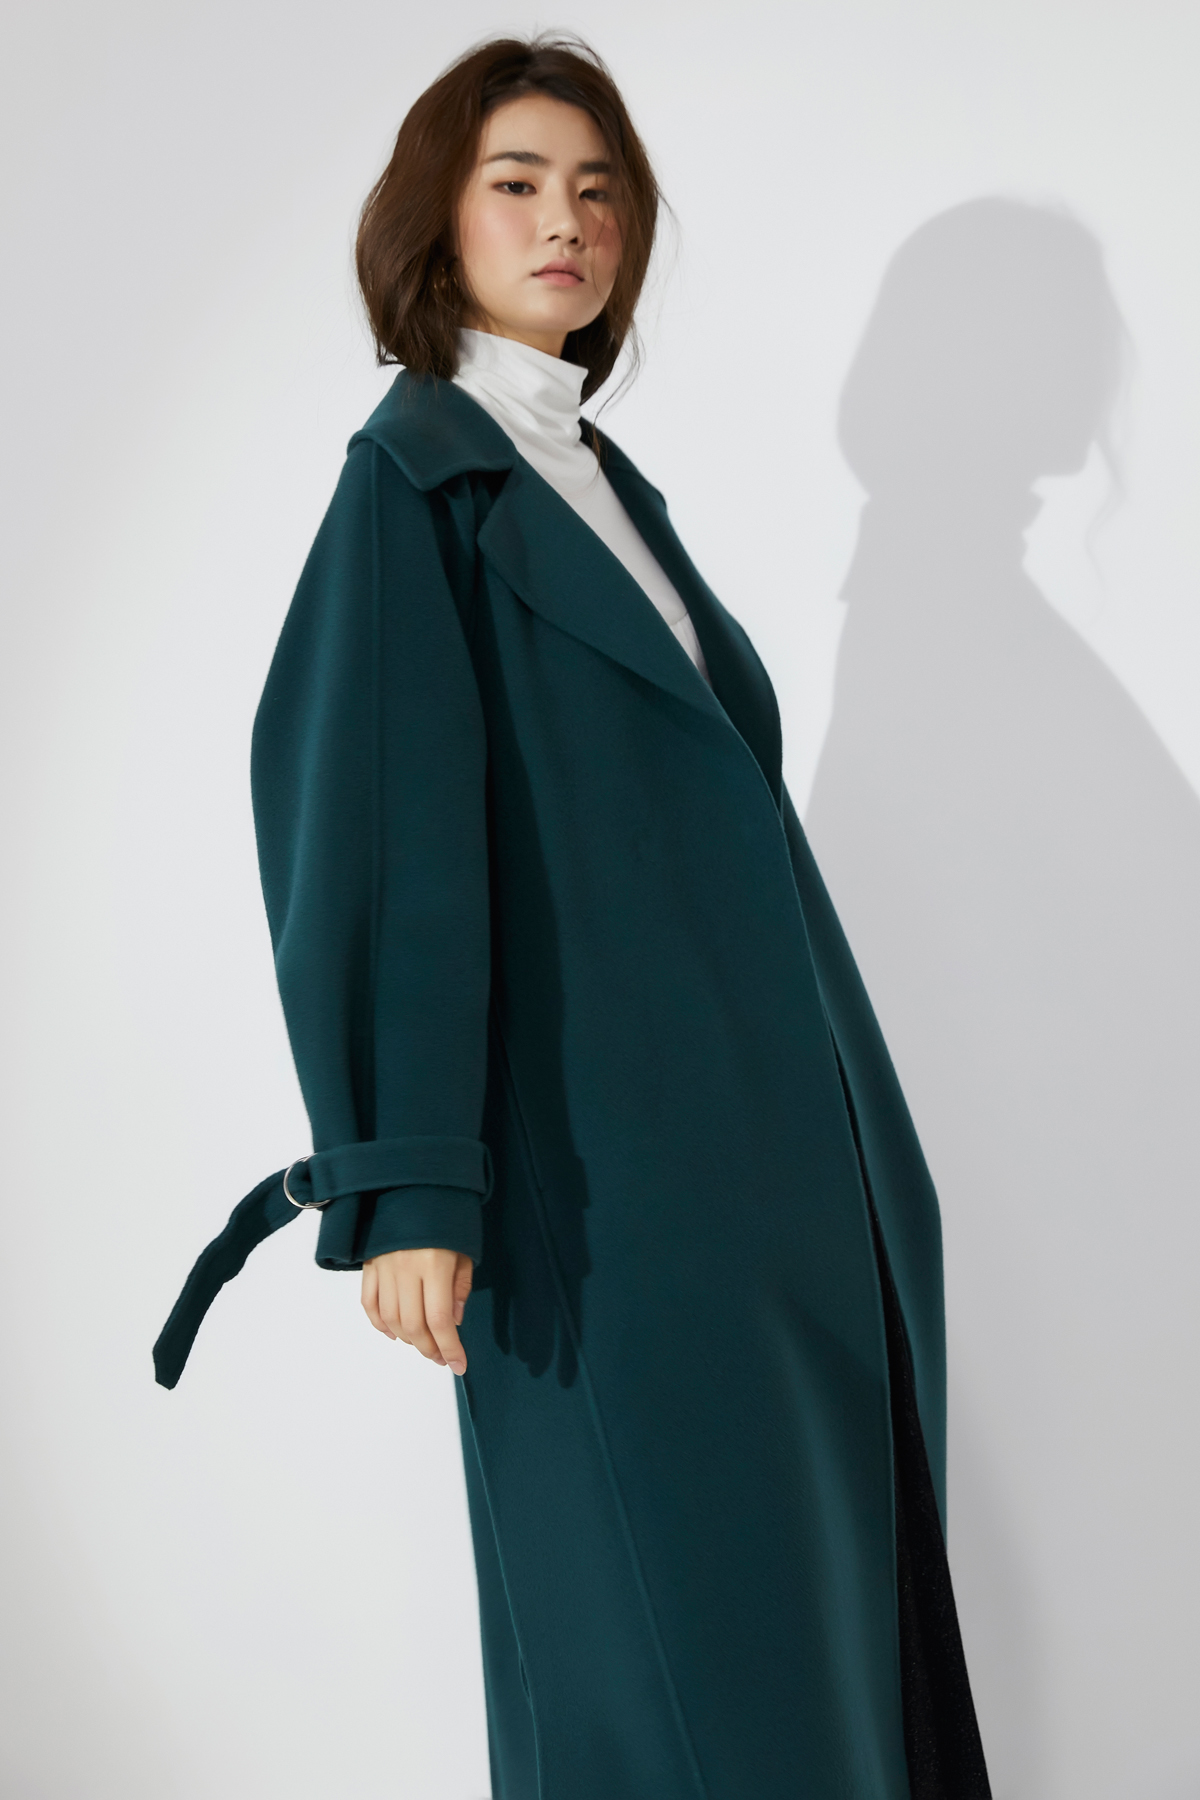 Volumed Sleeves Handmade Coat Turquoise